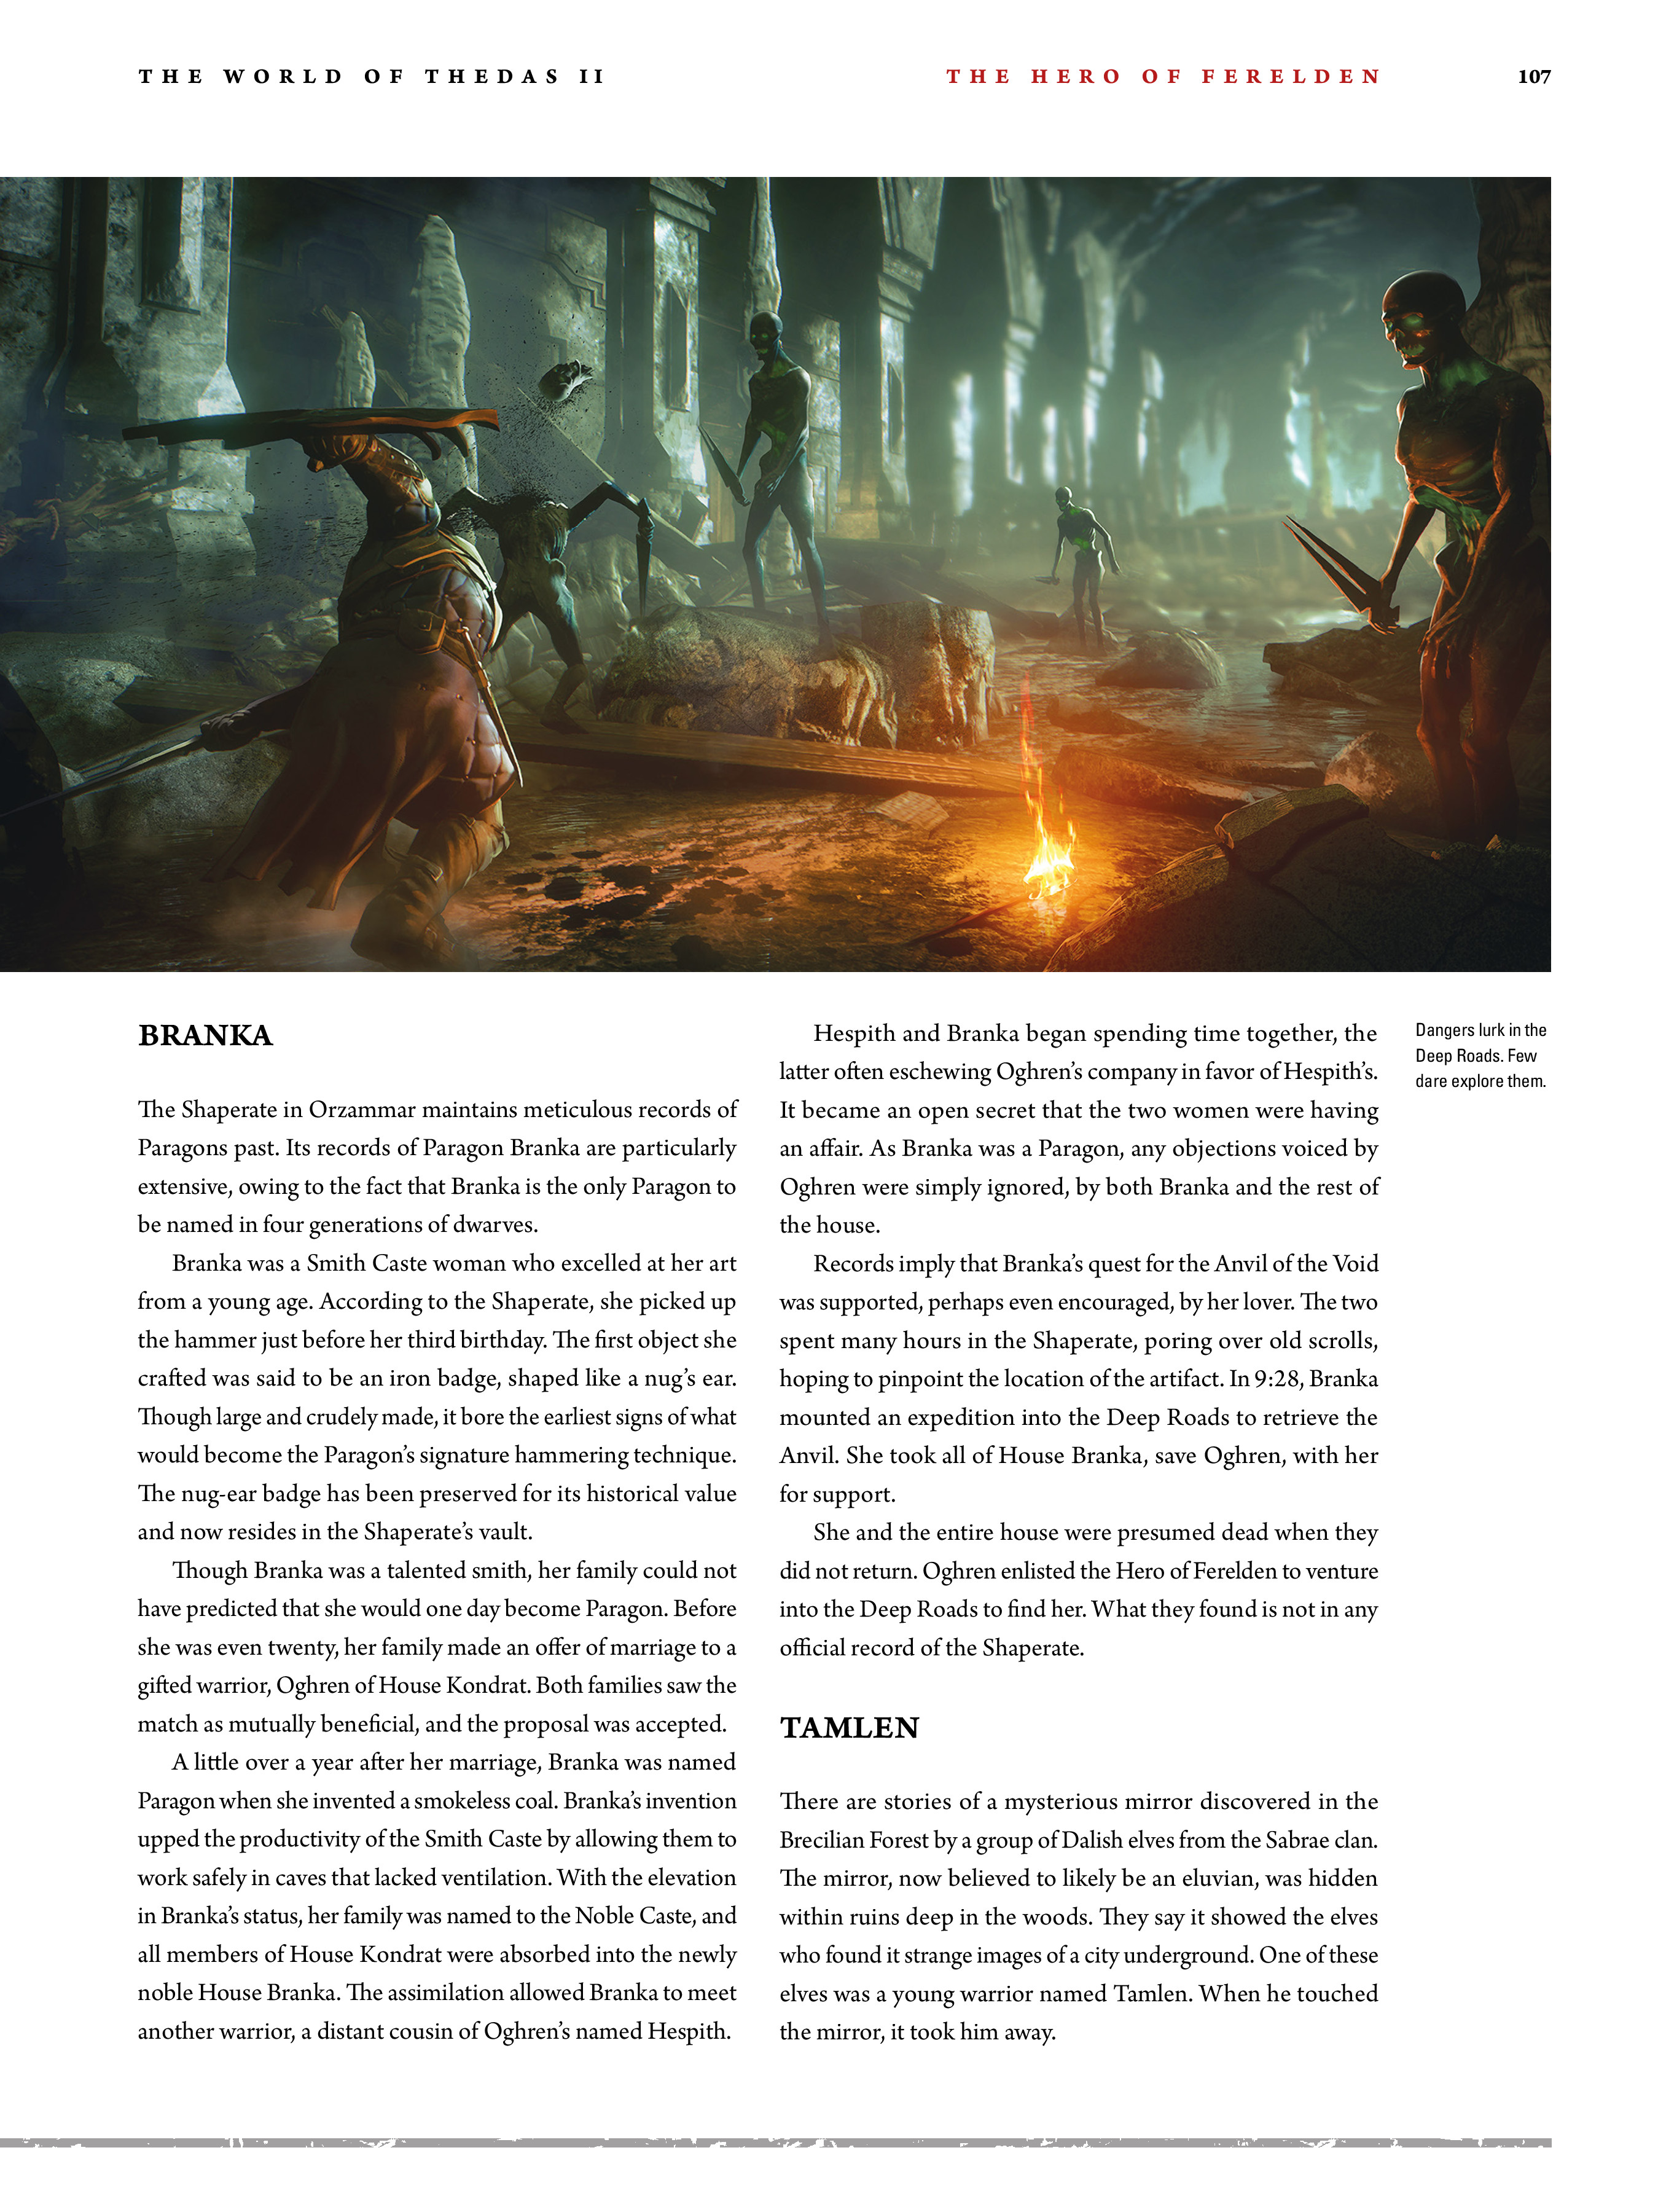 Read online Dragon Age: The World of Thedas comic -  Issue # TPB 2 - 103